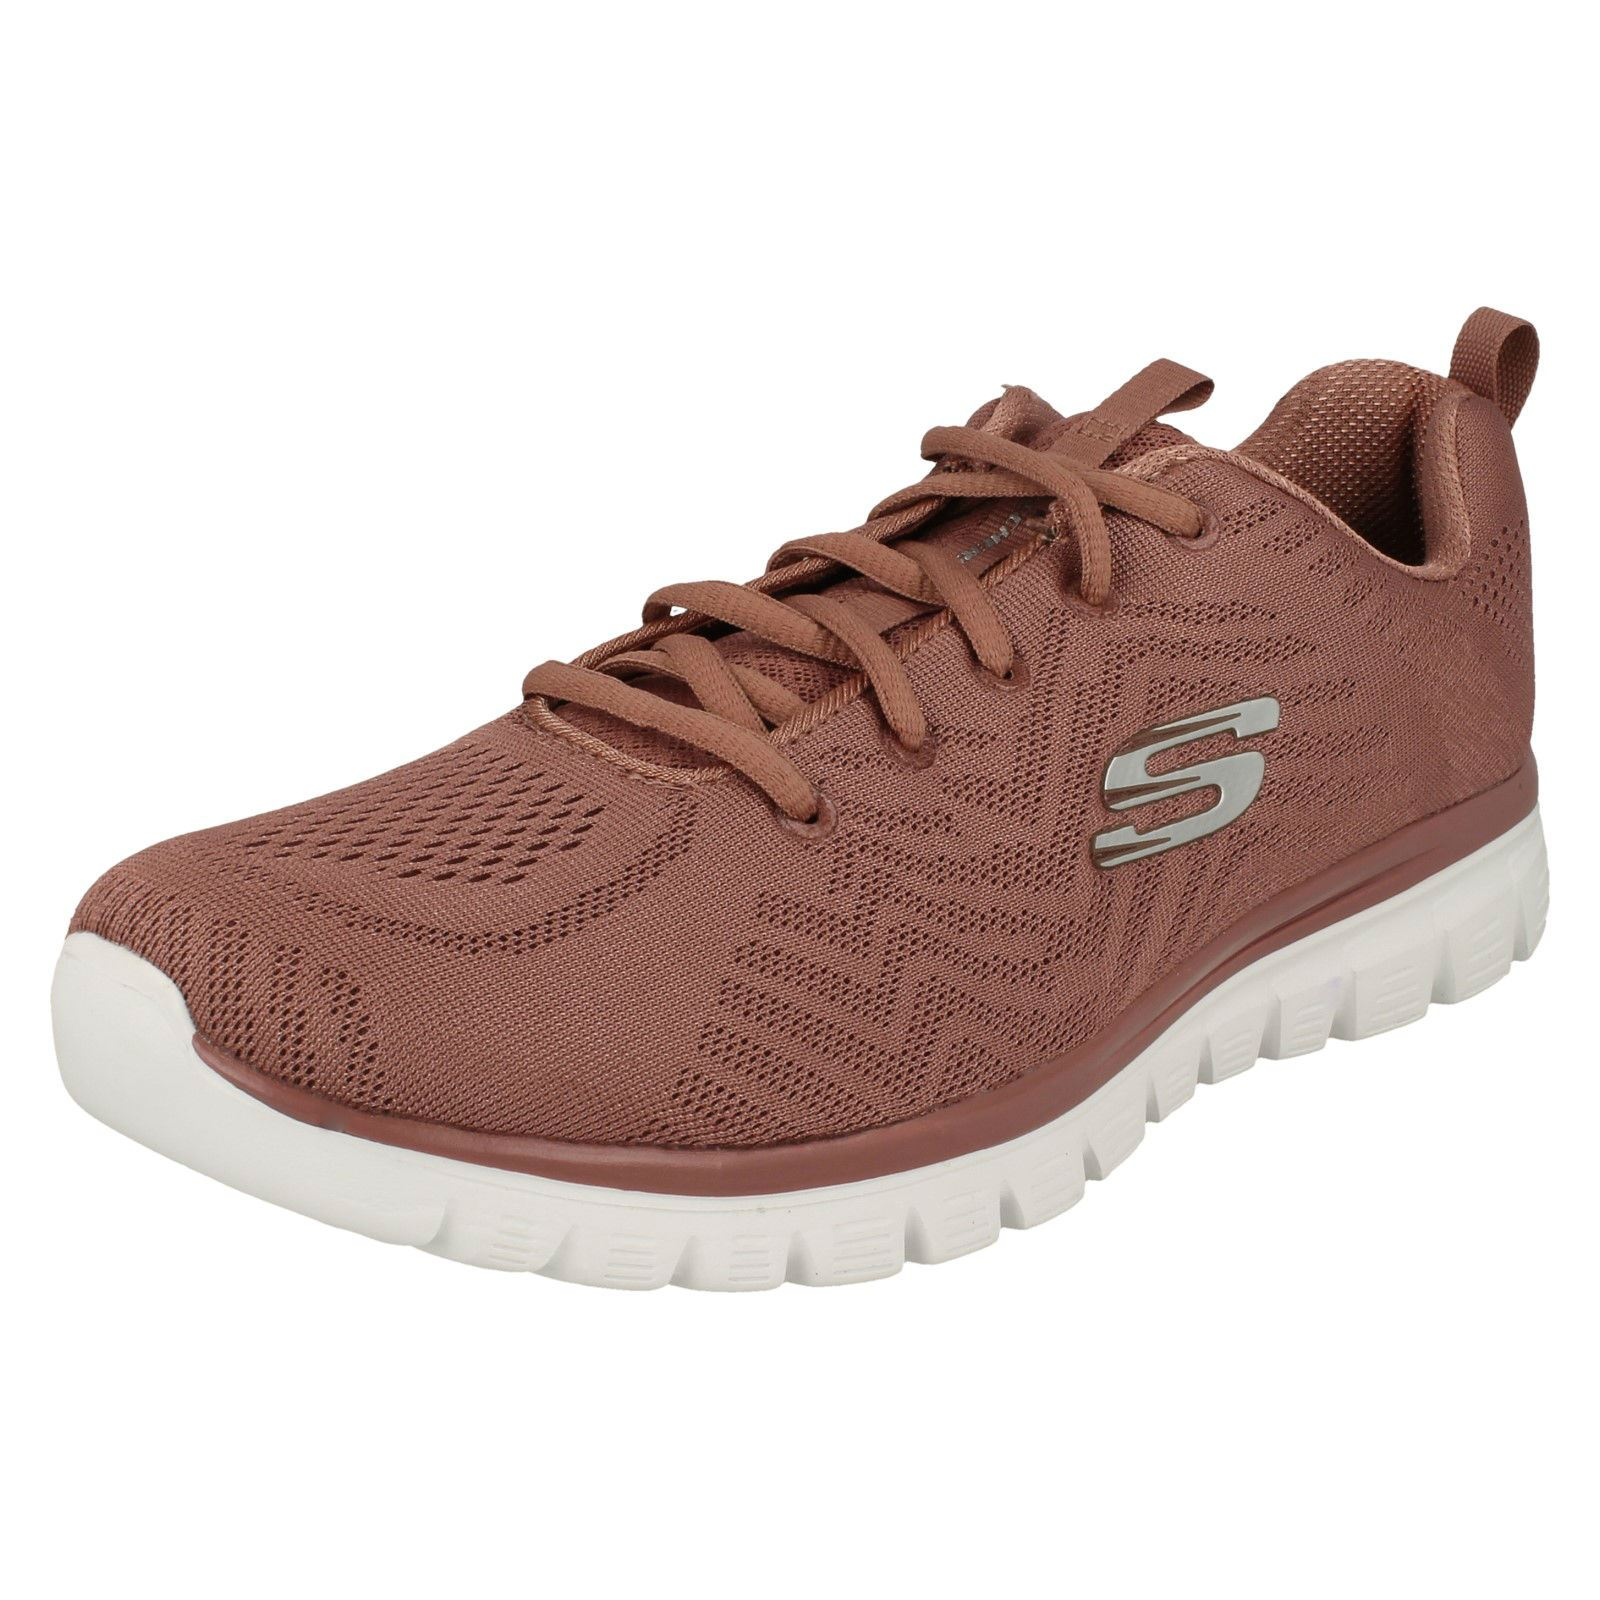 rosa señoras se Lace Trainers malva color Everyday conectan Skechers de Casual Textile Up Las O8AqdqS